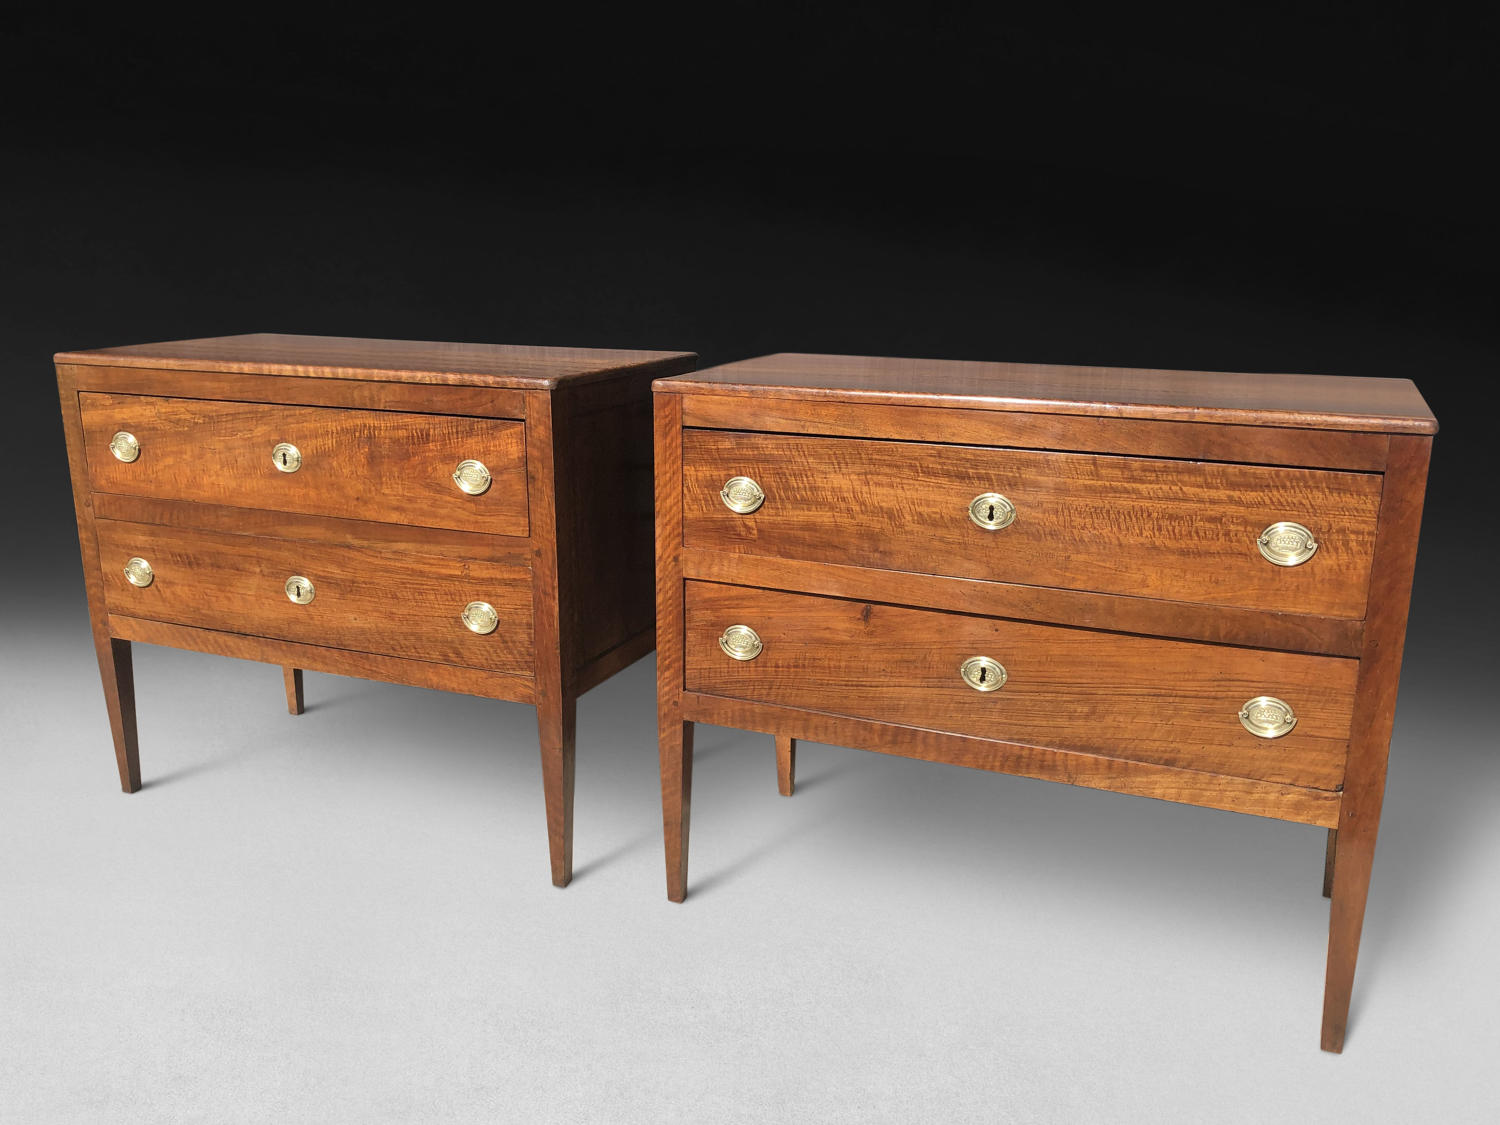 A RARE PAIR OF WALNUT COMMODES. ITALY C. 1800